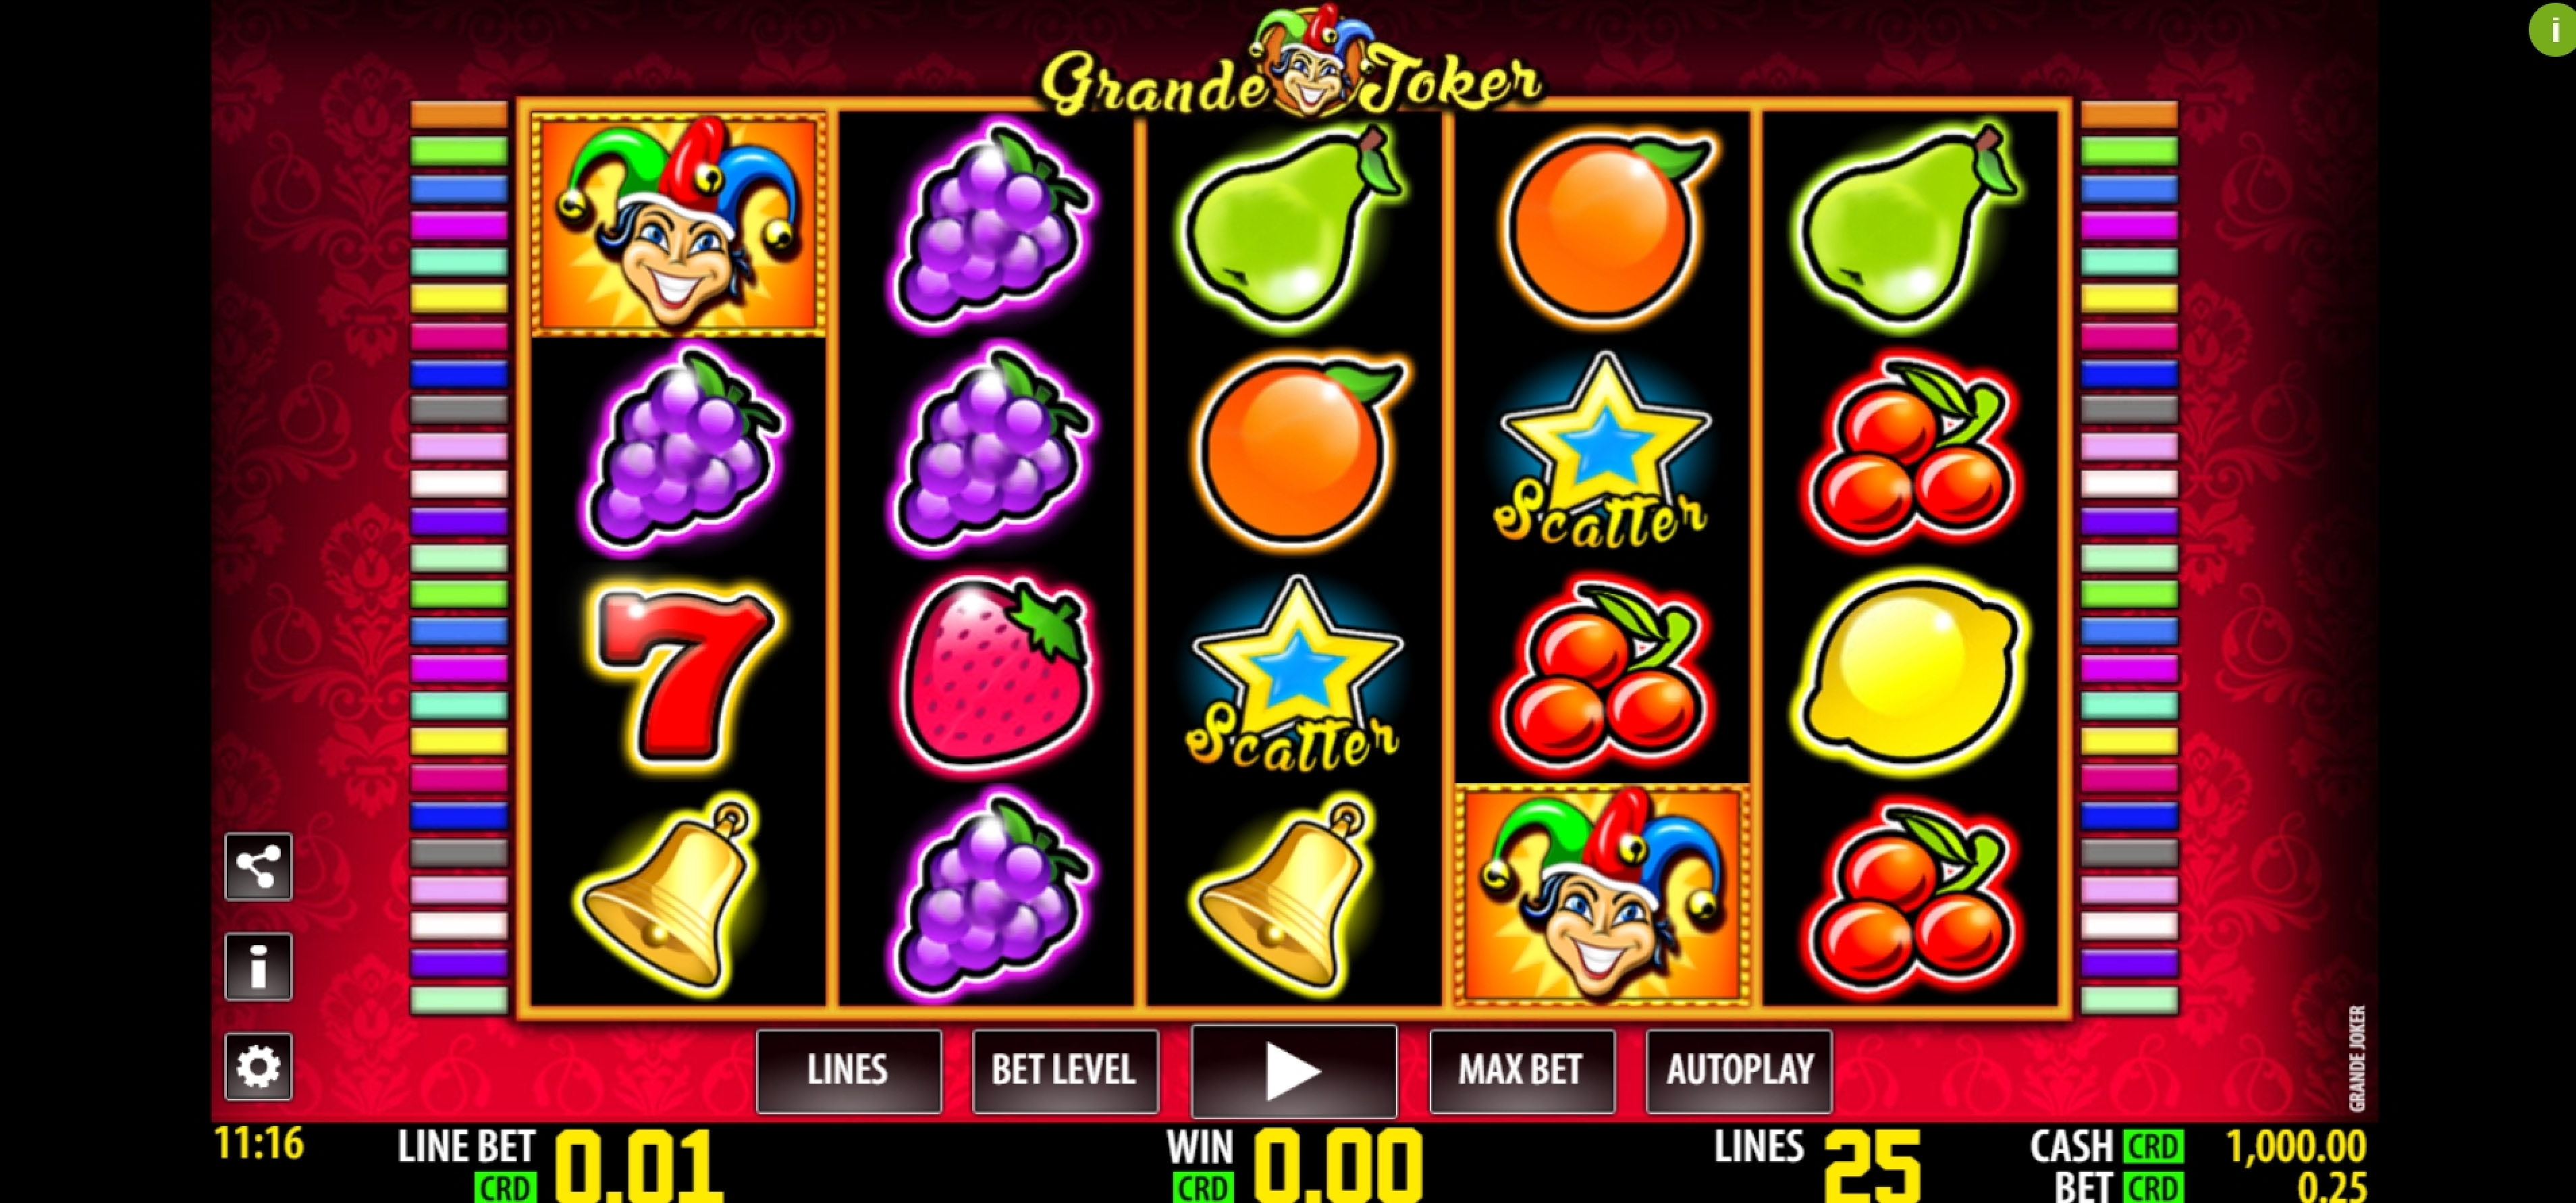 Reels in Grande Joker Slot Game by Nazionale Elettronica